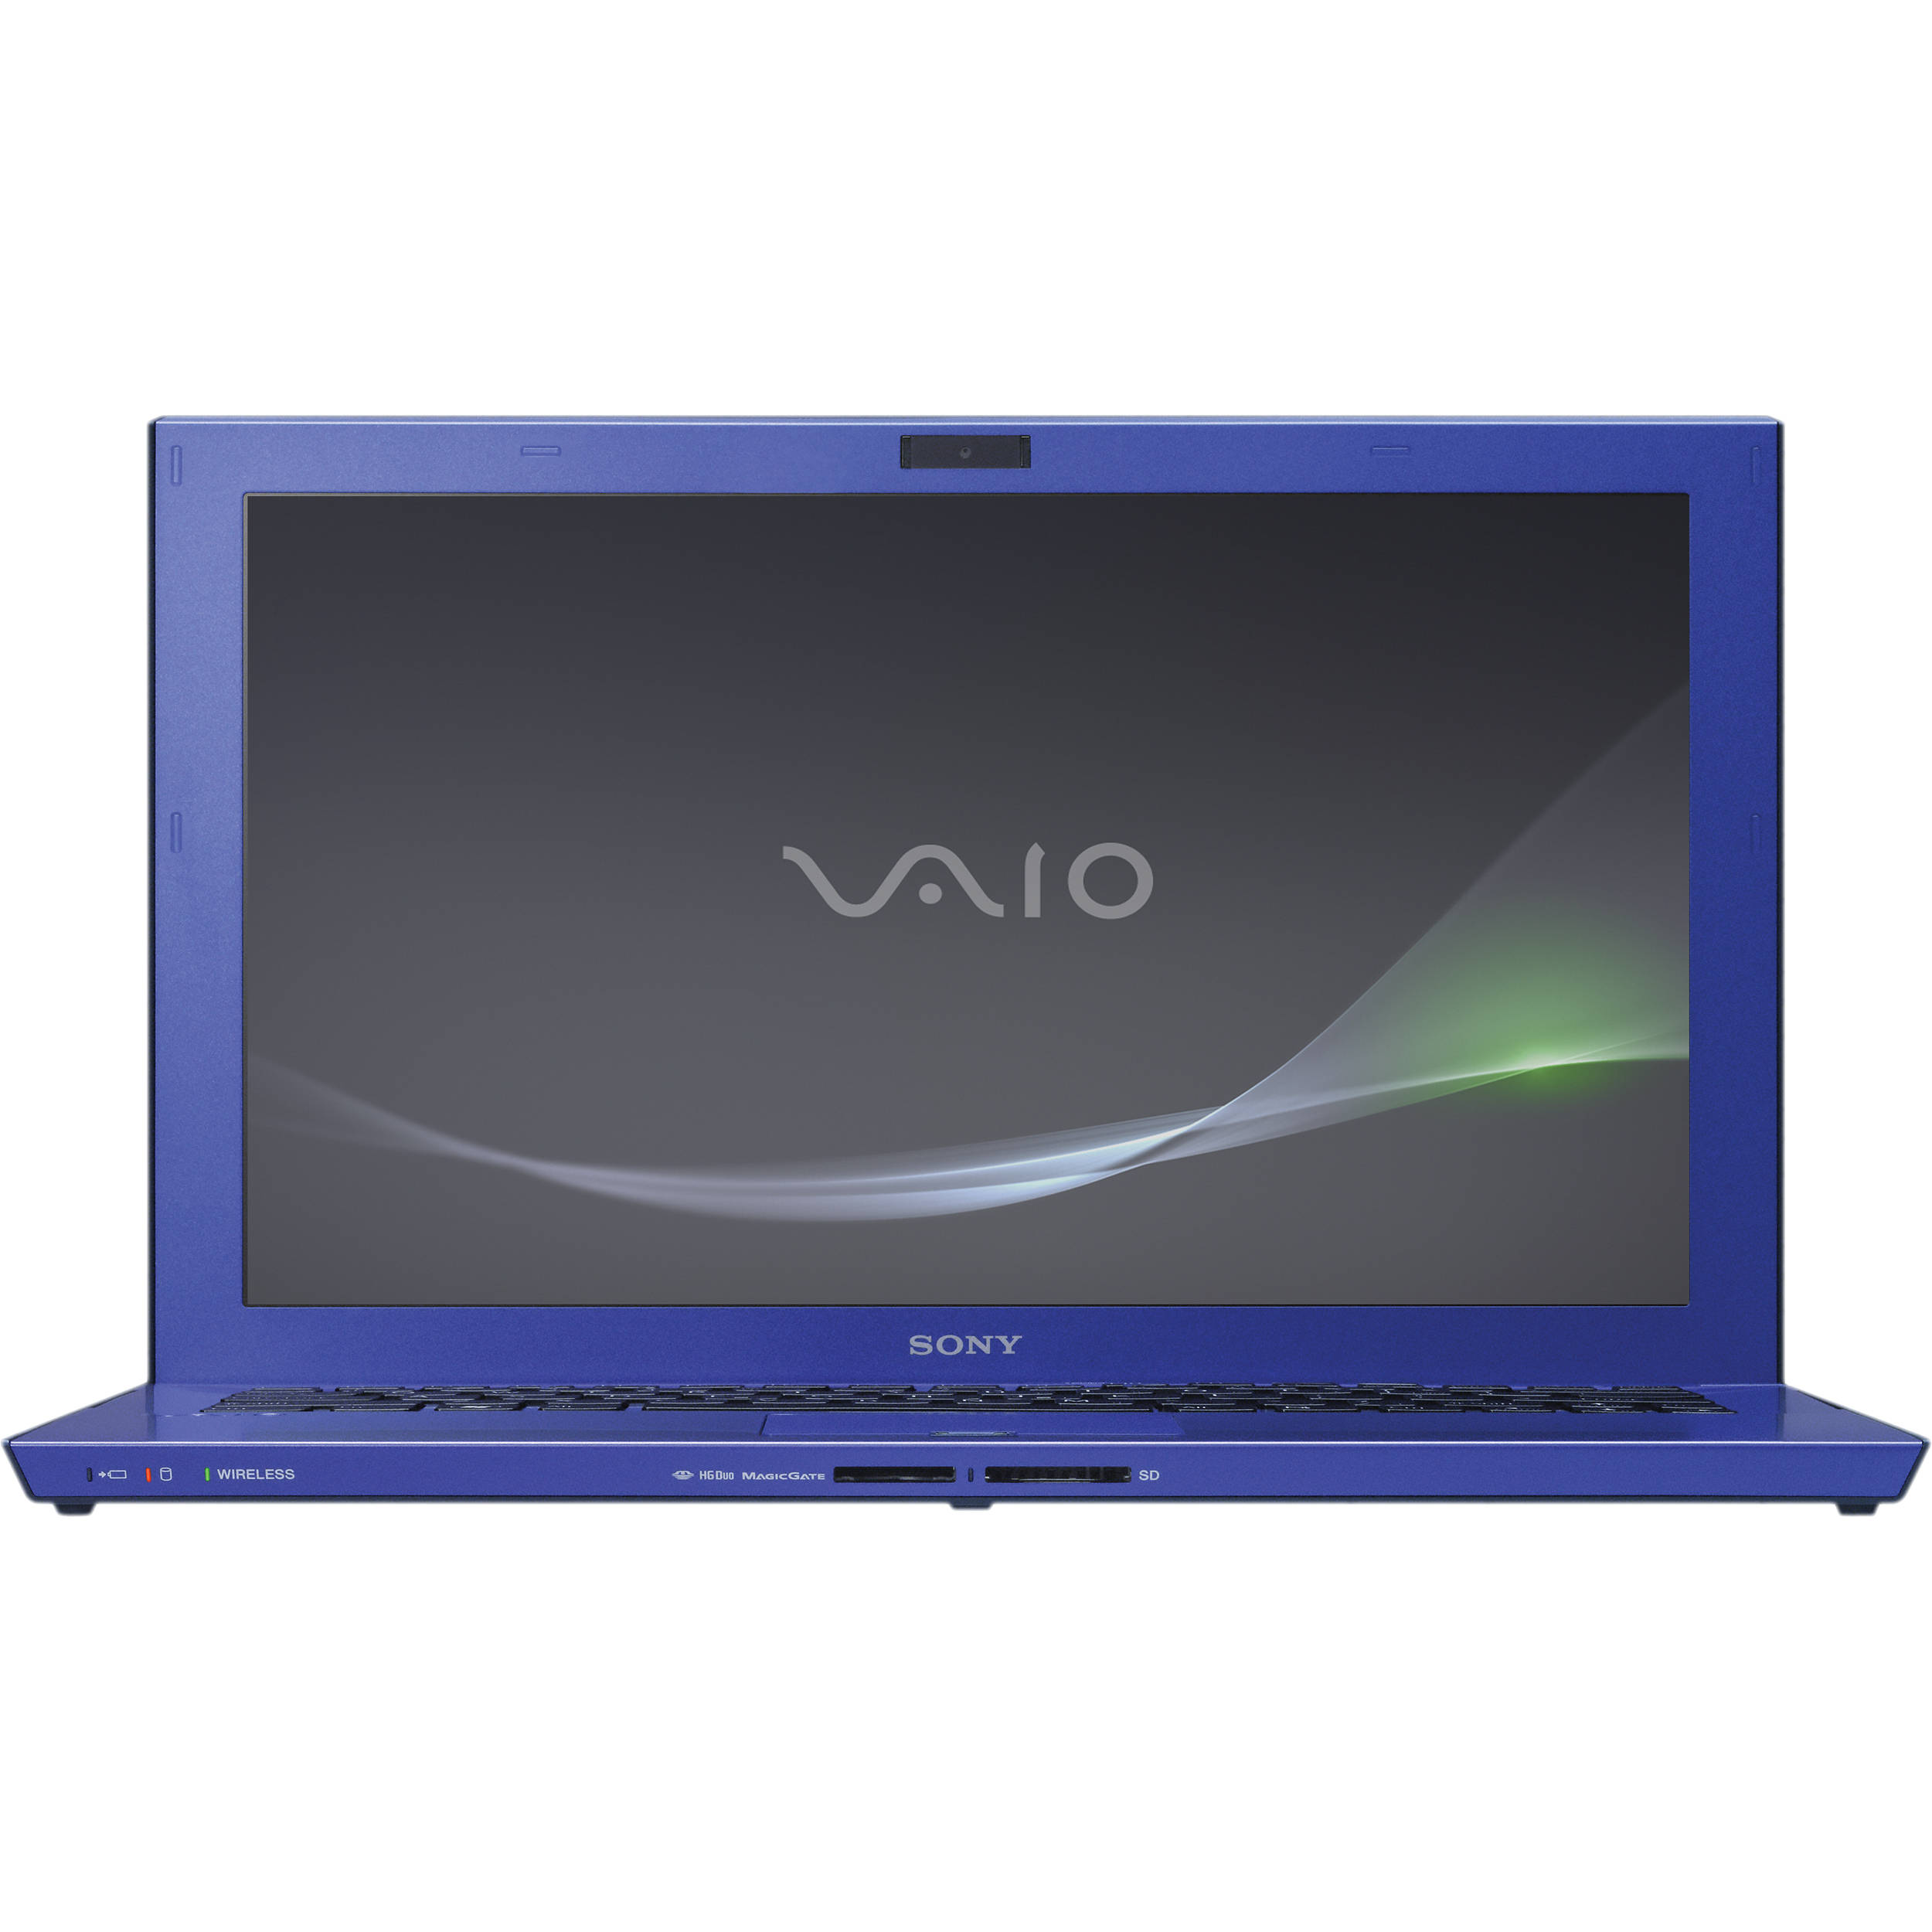 Sony Vaio Cw17fx Driver - easysoftware48 s diary